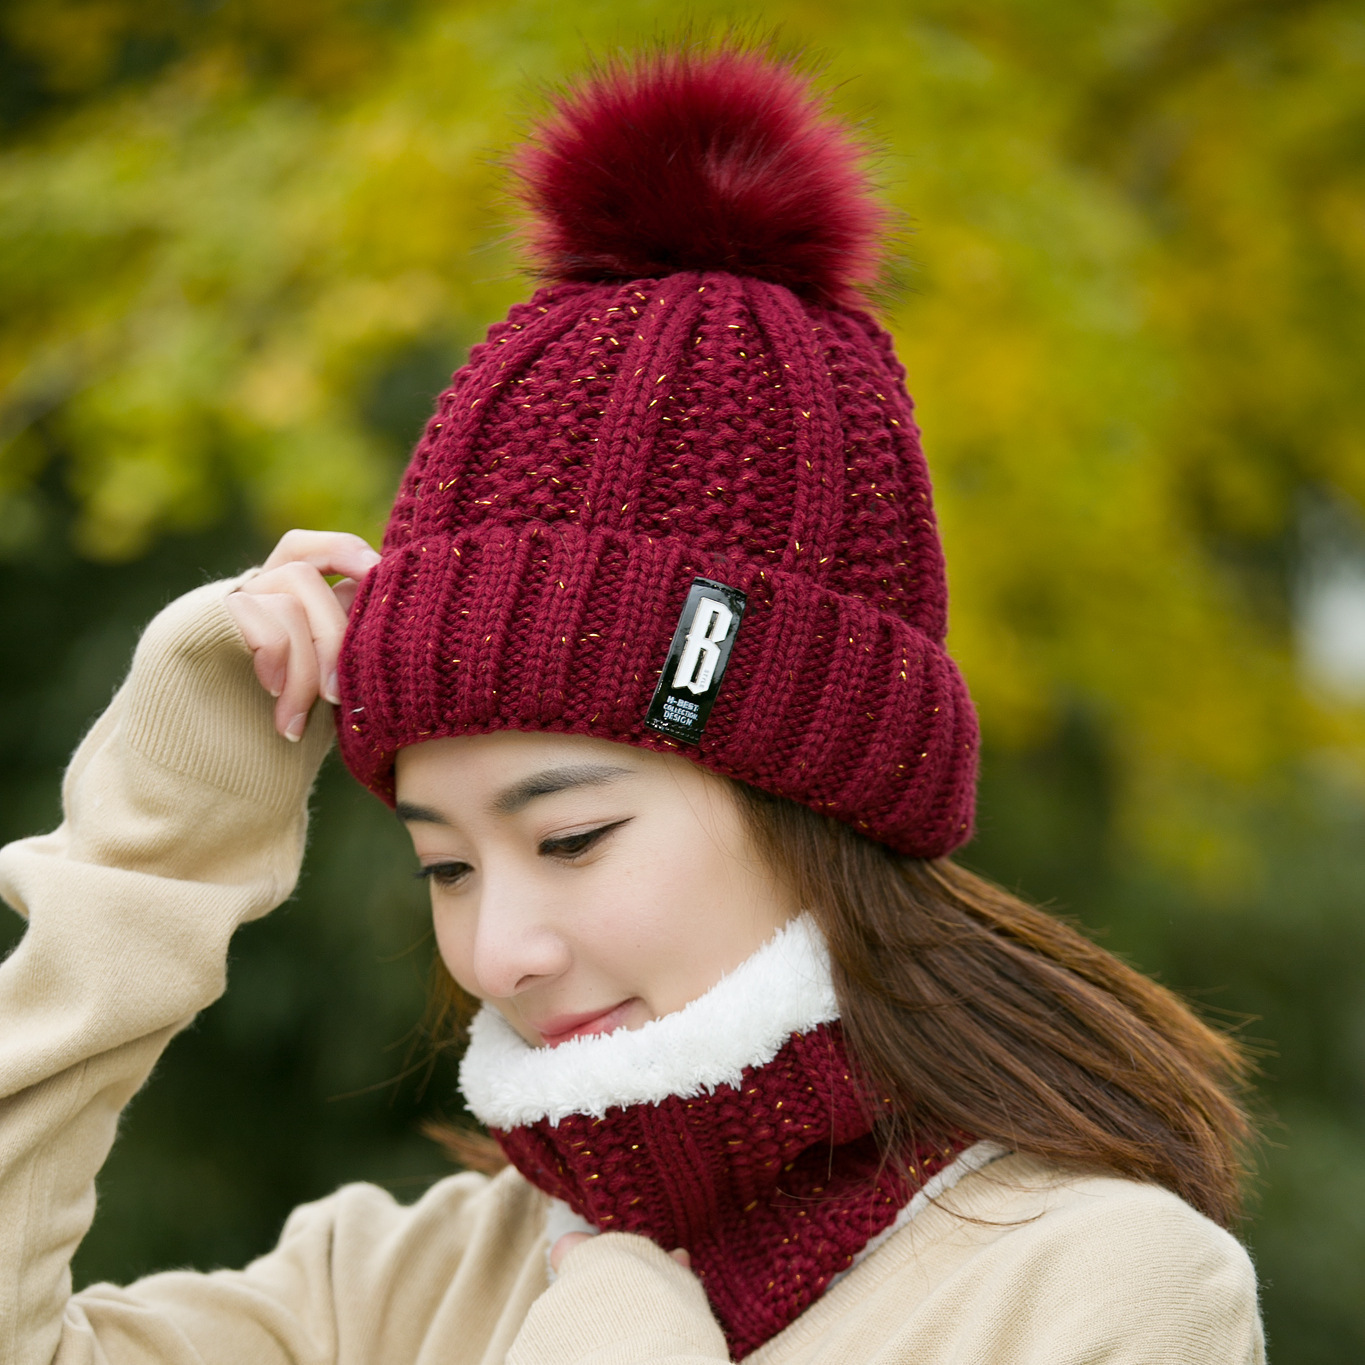 Wool  Plus Thick Warm Knitted Ball Hat Neck Scarf Set Wind Proof Warm Fashion New Autumn And Winter Women Accessories